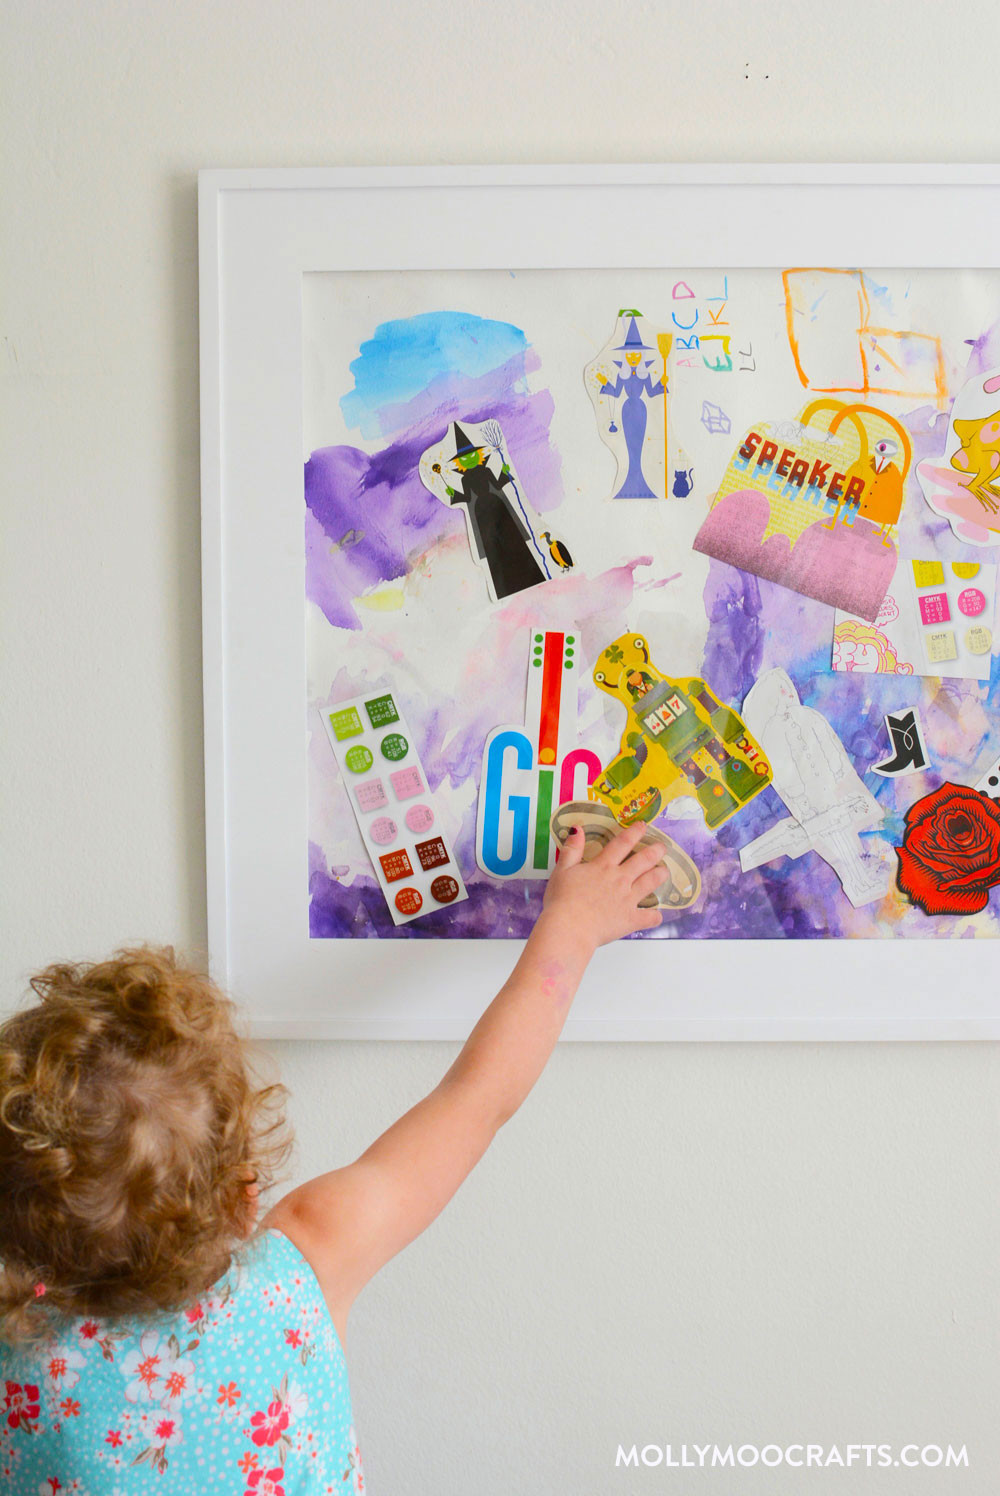 Best ideas about Art With Kids . Save or Pin MollyMooCrafts Fun Art Project For Kids Mixed Media Collage Now.